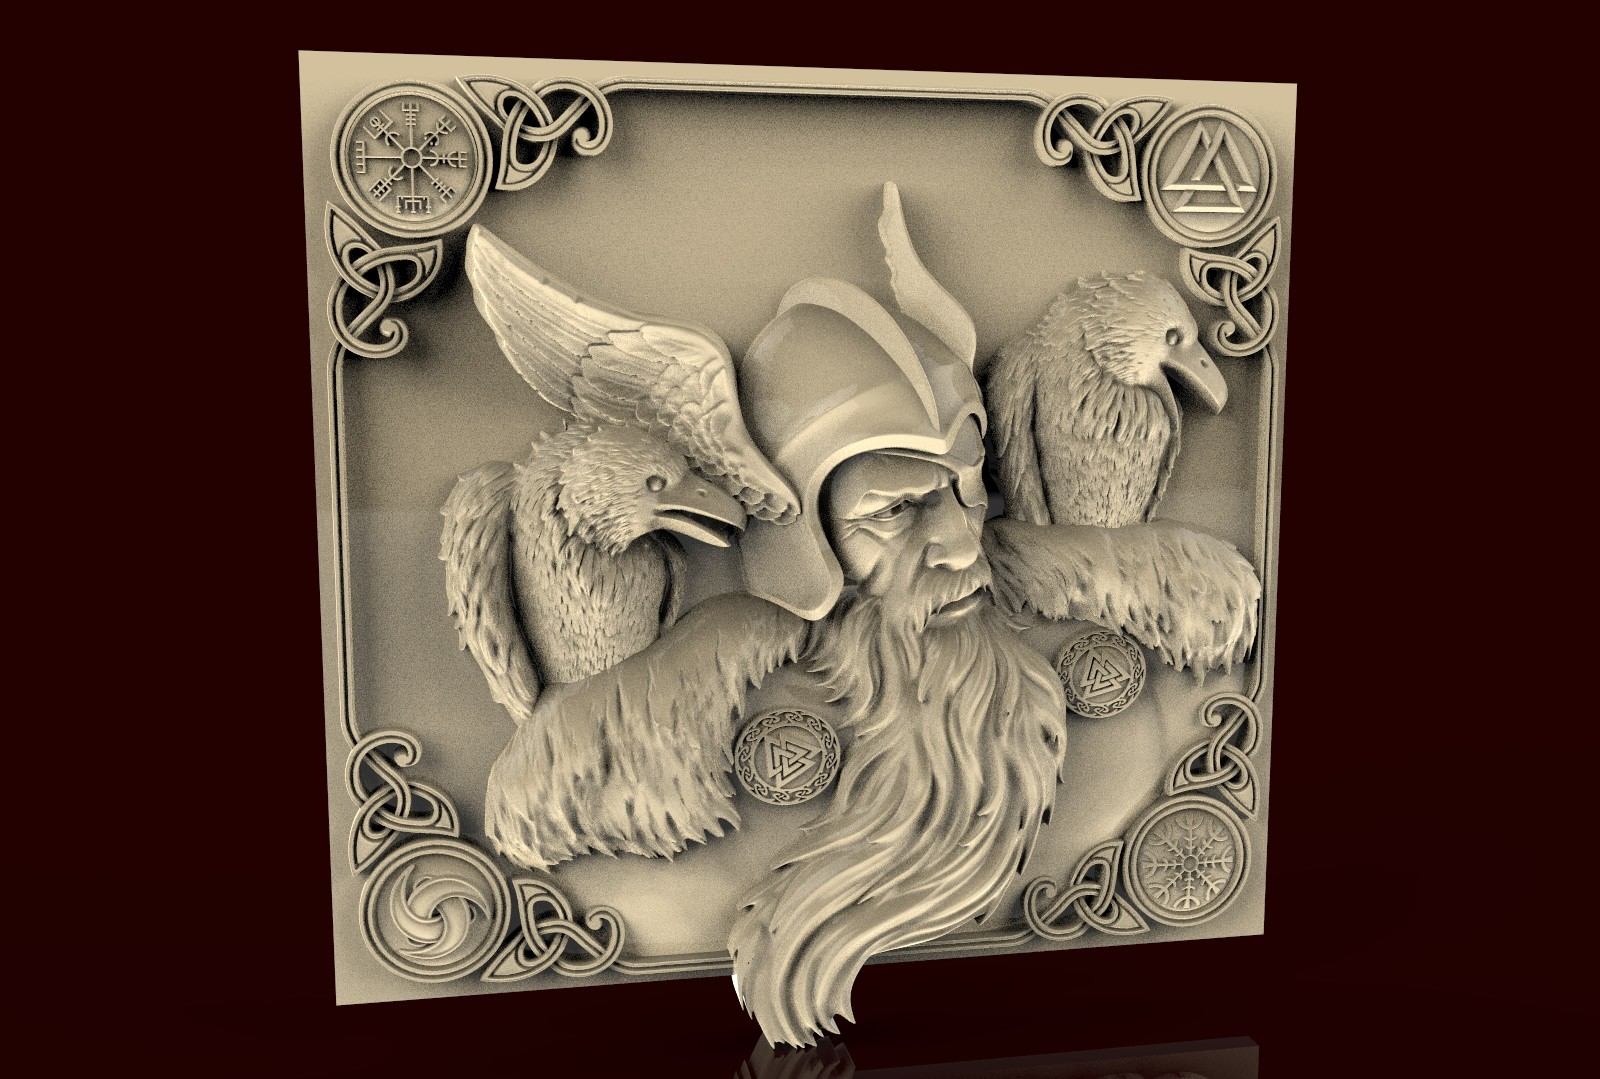 CNC 248 (One and Crows) 3D STL Model